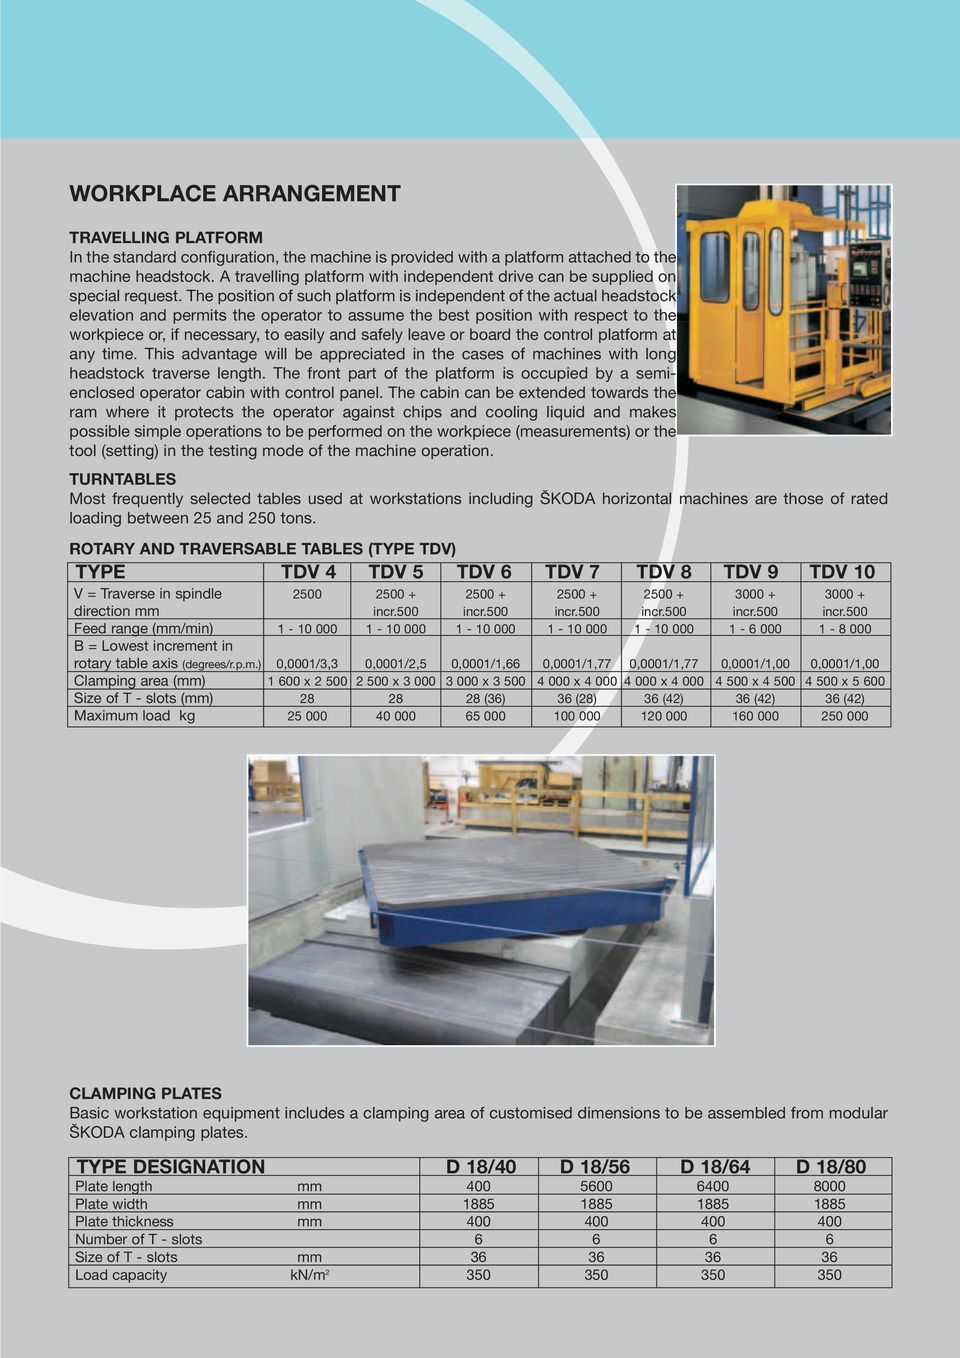 The position of such platform is independent of the actual headstock elevation and permits the operator to assume the best position with respect to the workpiece or, if necessary, to easily and